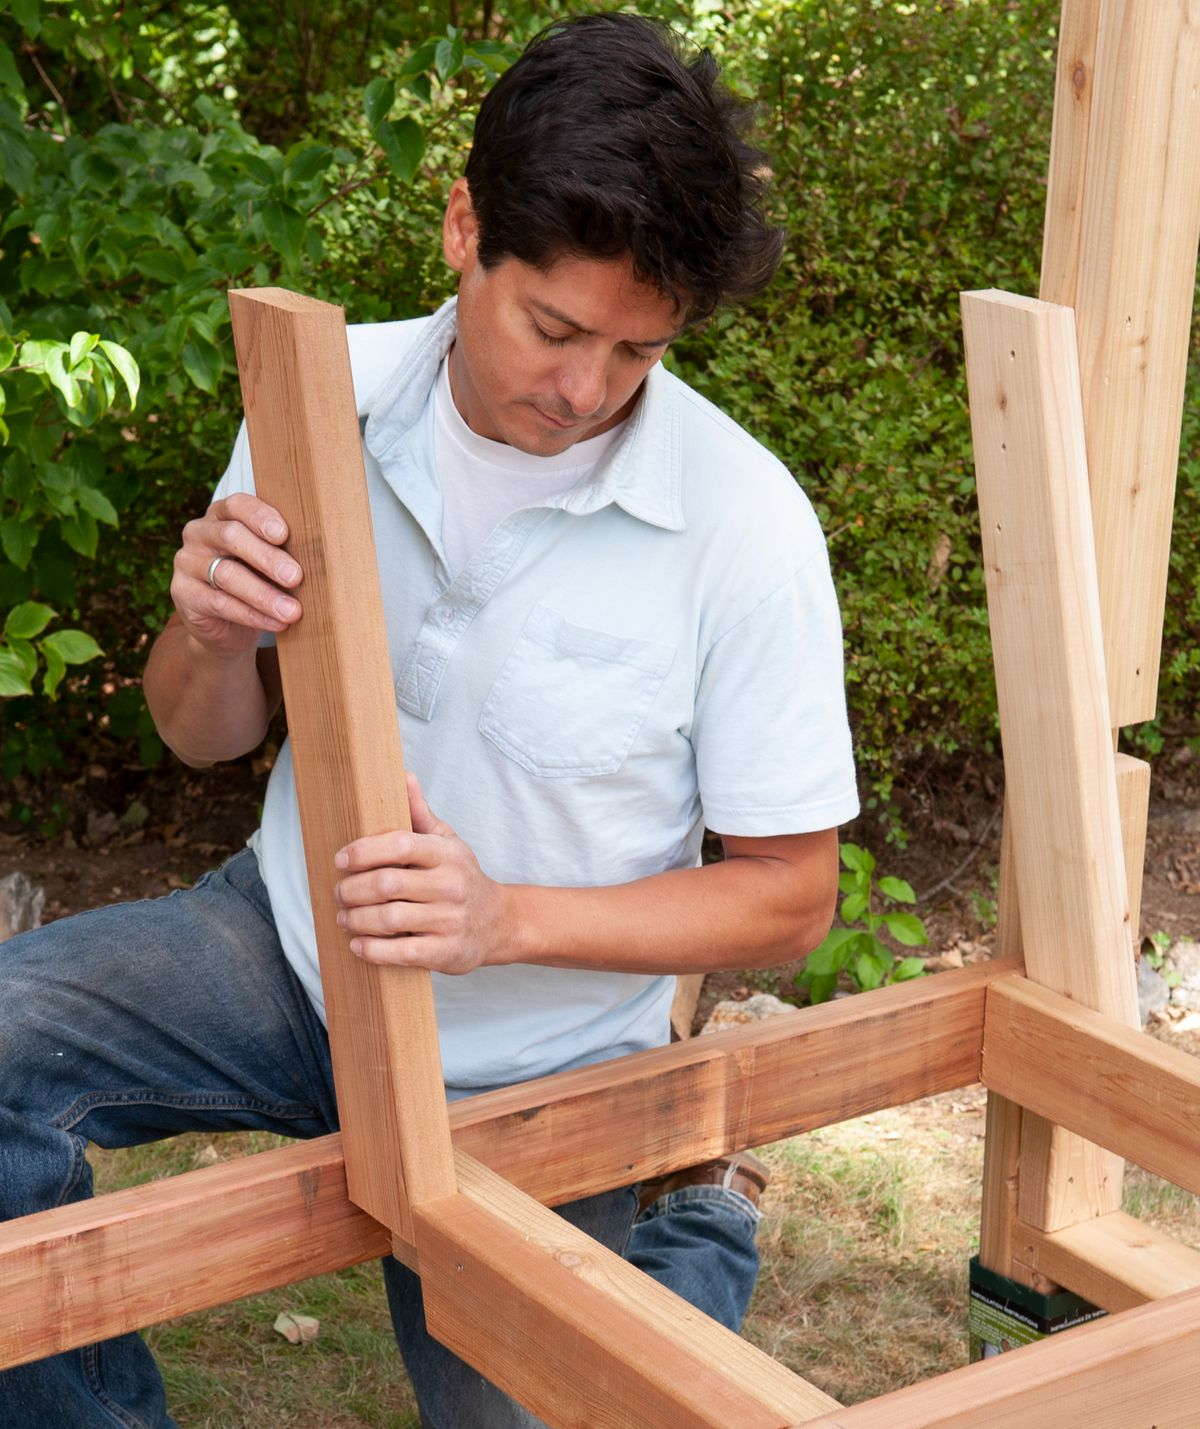 Man Secures Center Support Of Arbor Bench